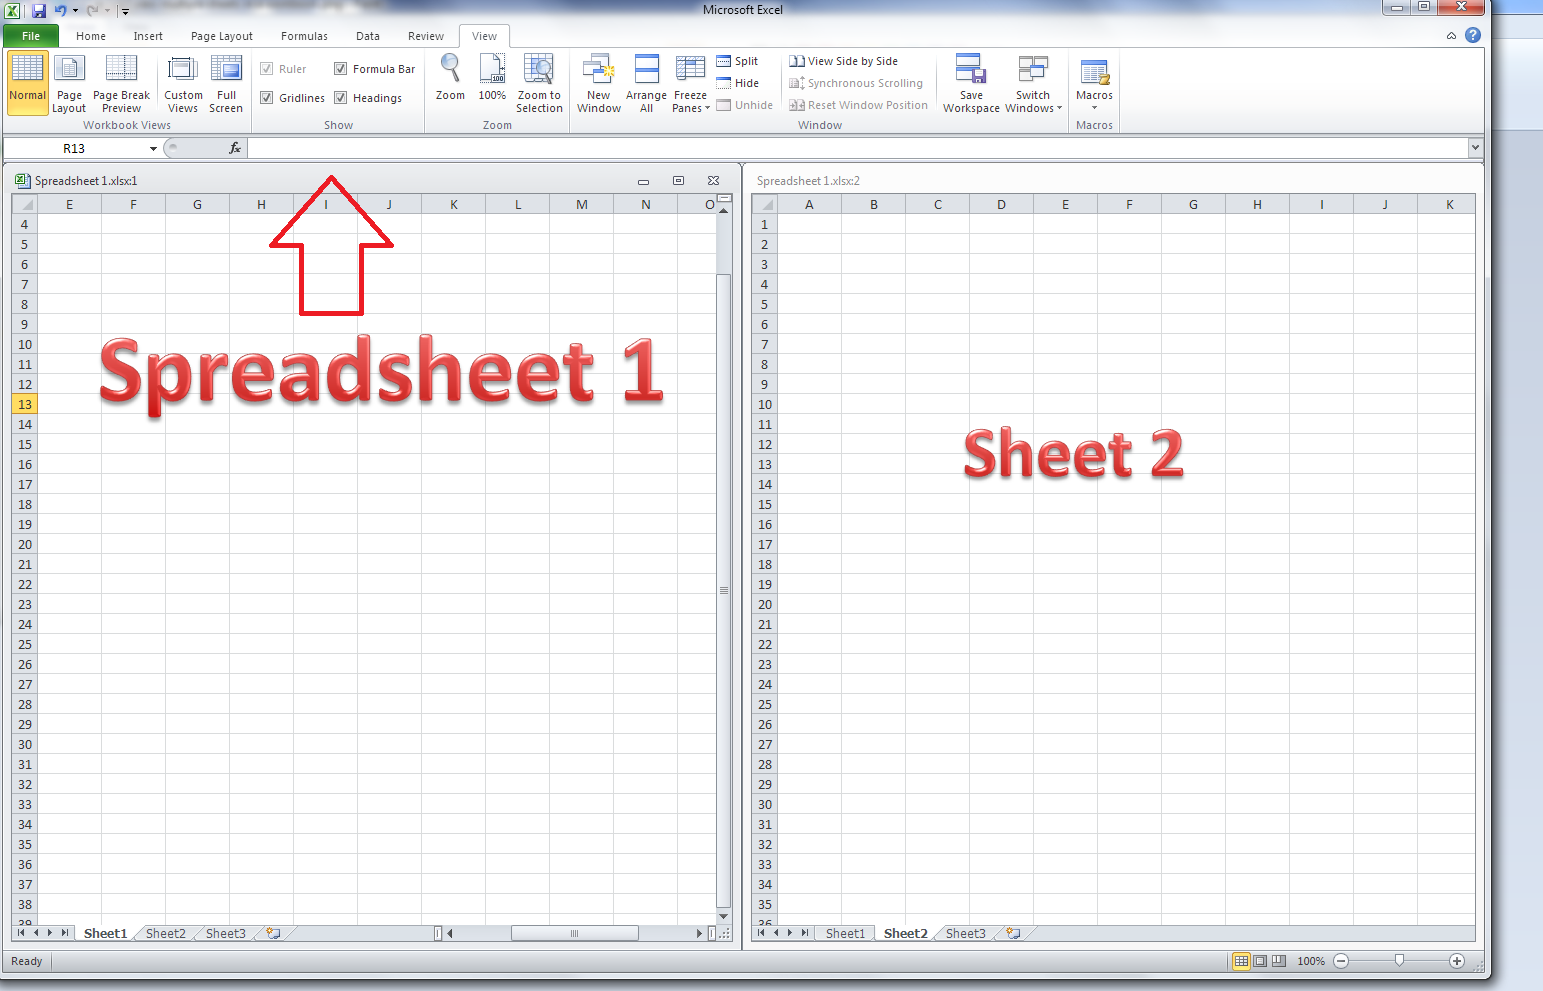 Worksheets An Excel File That Contains One Or More Worksheets how do i view two sheets of an excel workbook at the same time return to single sheet view